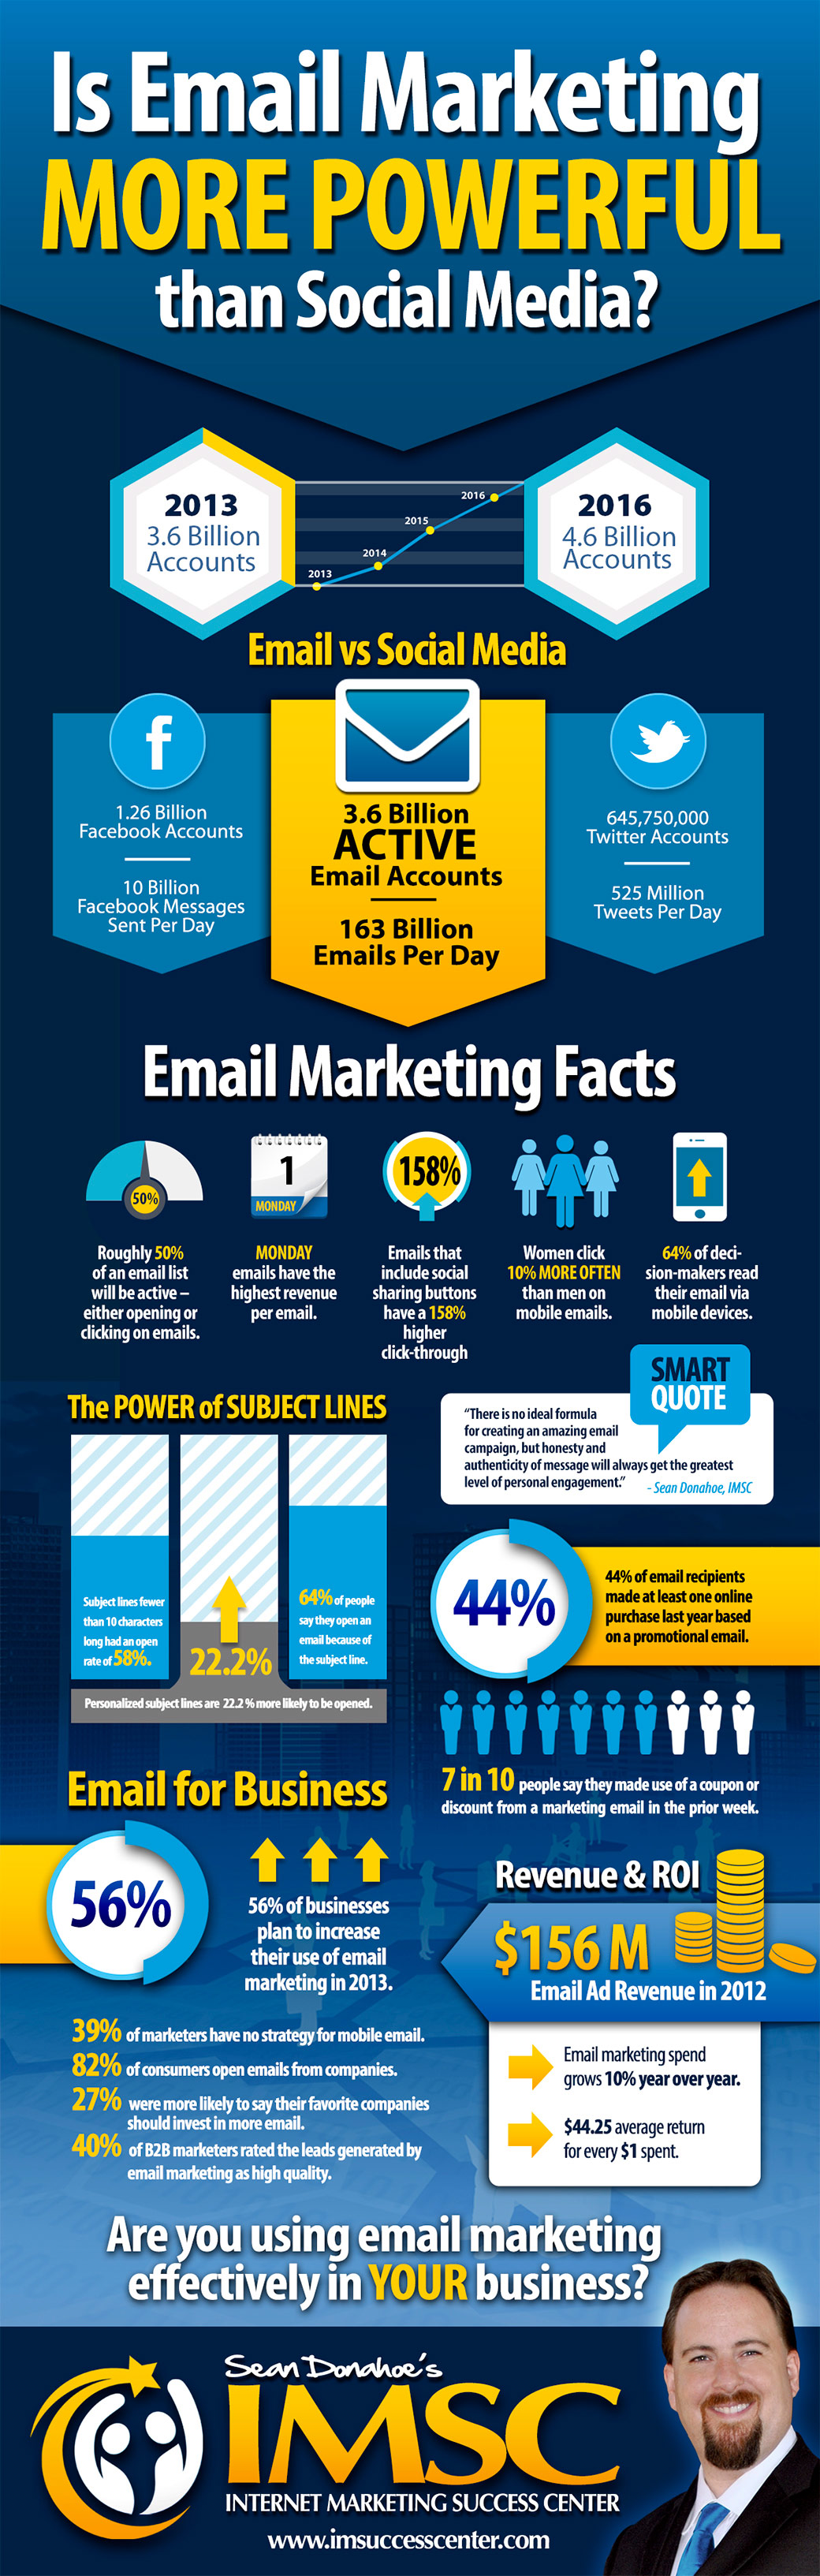 Is Email Marketing More Powerful than Social Media Marketing?